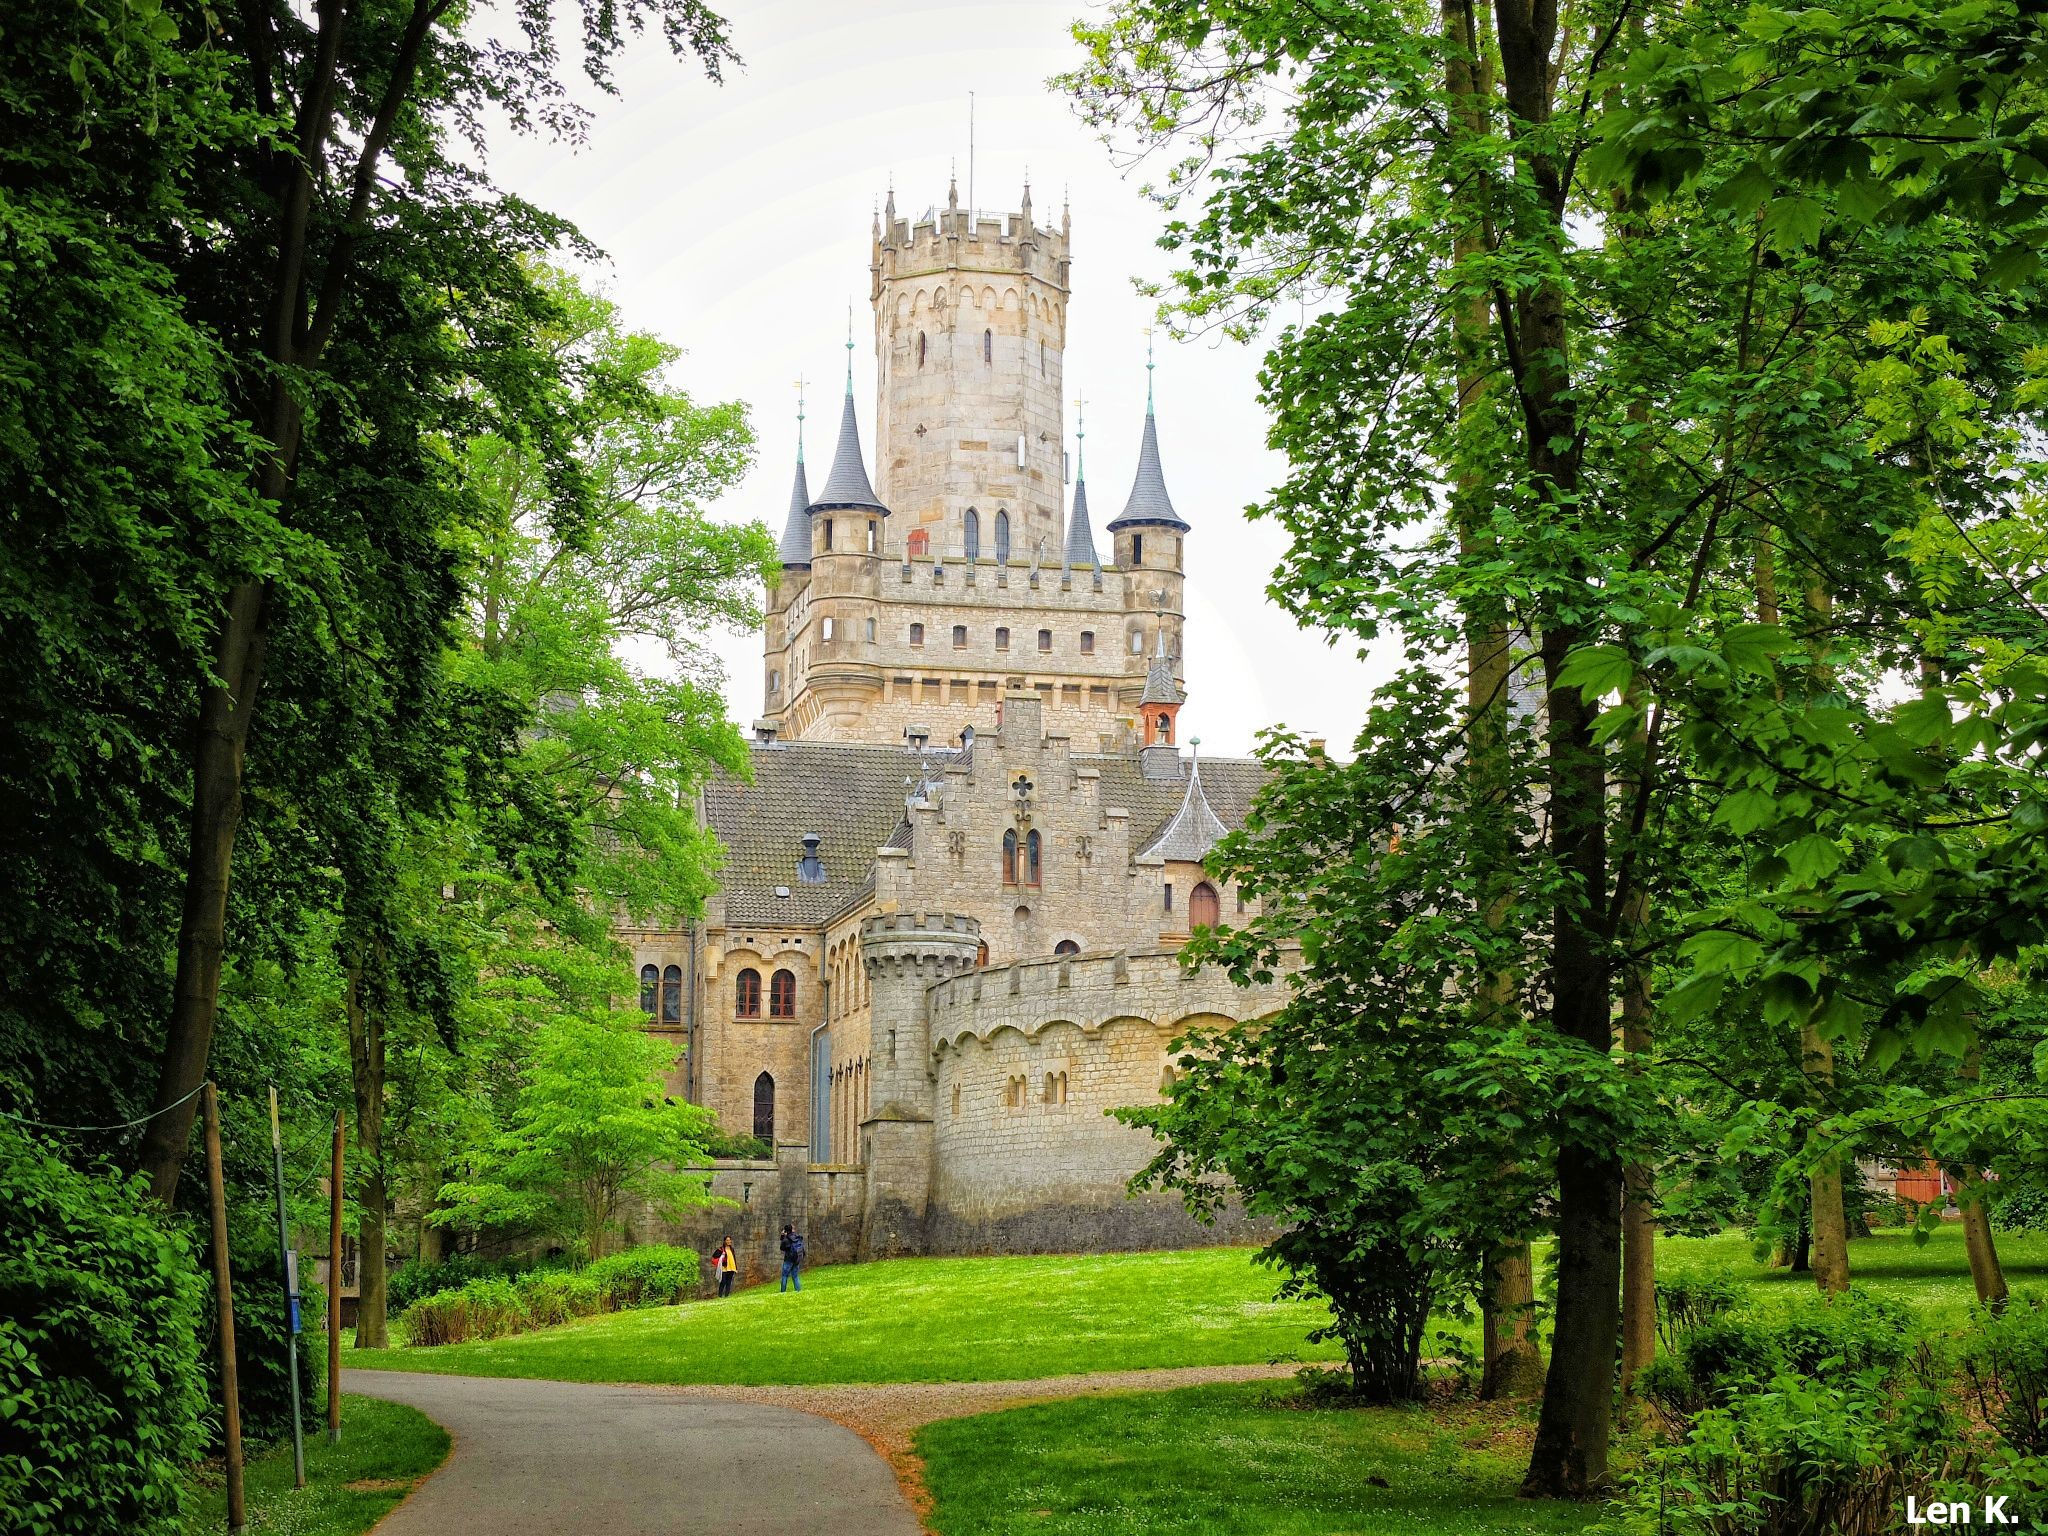 The tree-lined path leading to Marienburg